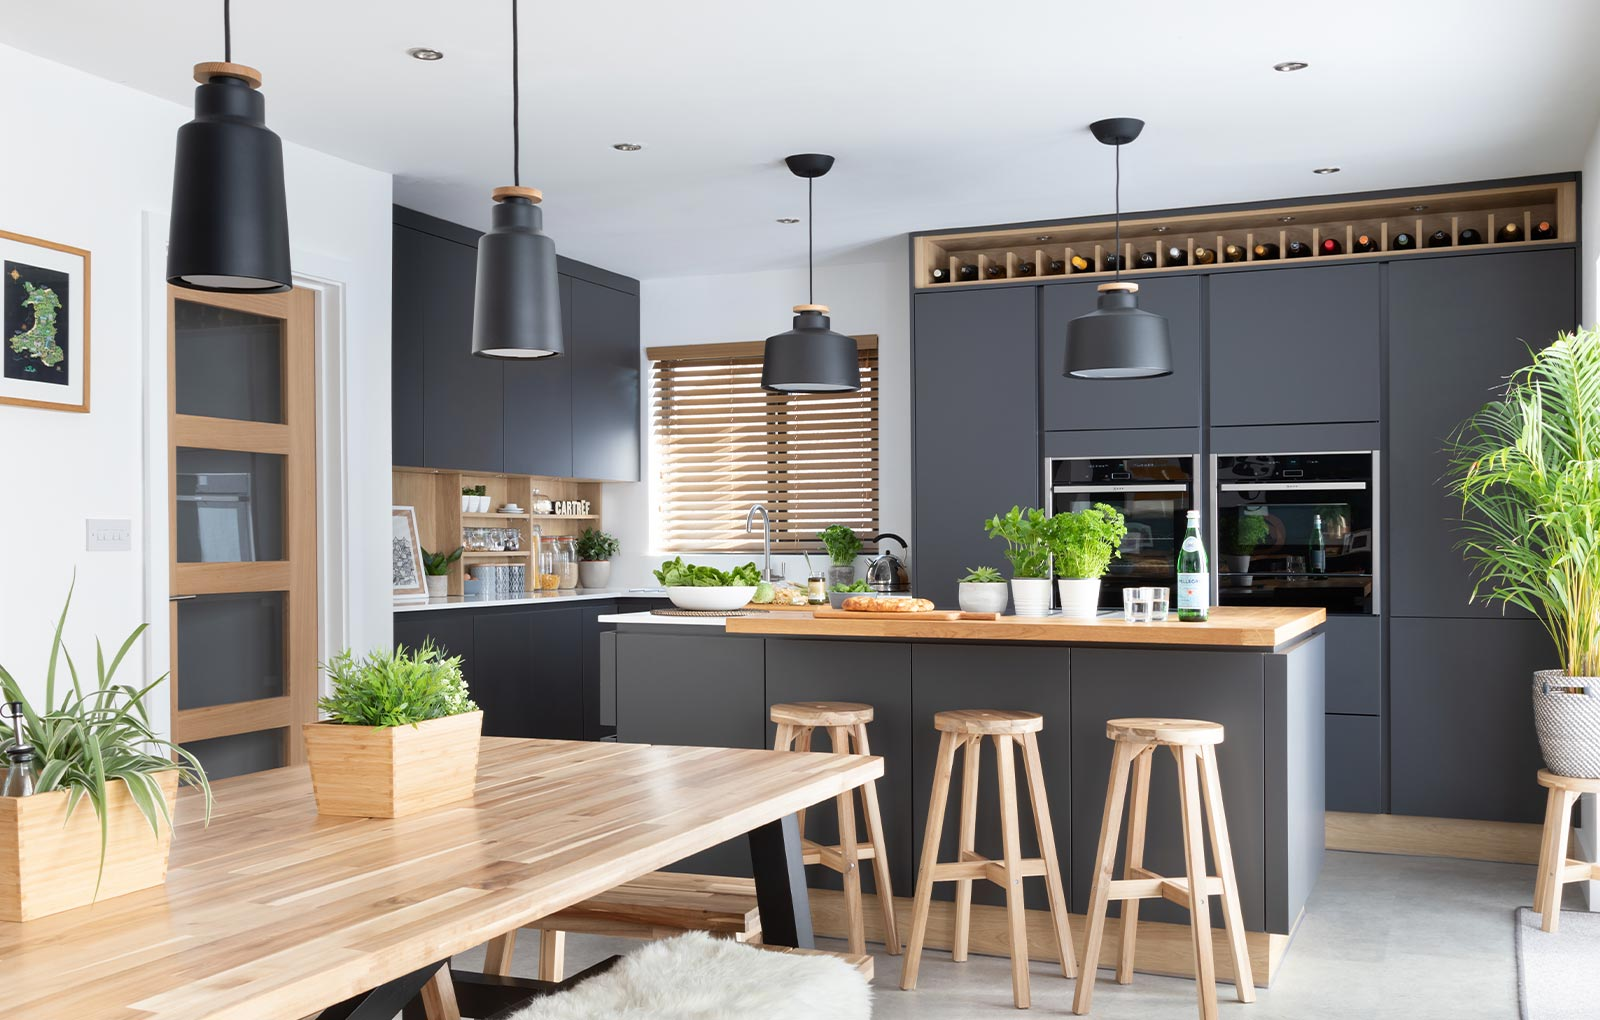 Modern dark kitchen with wood accents